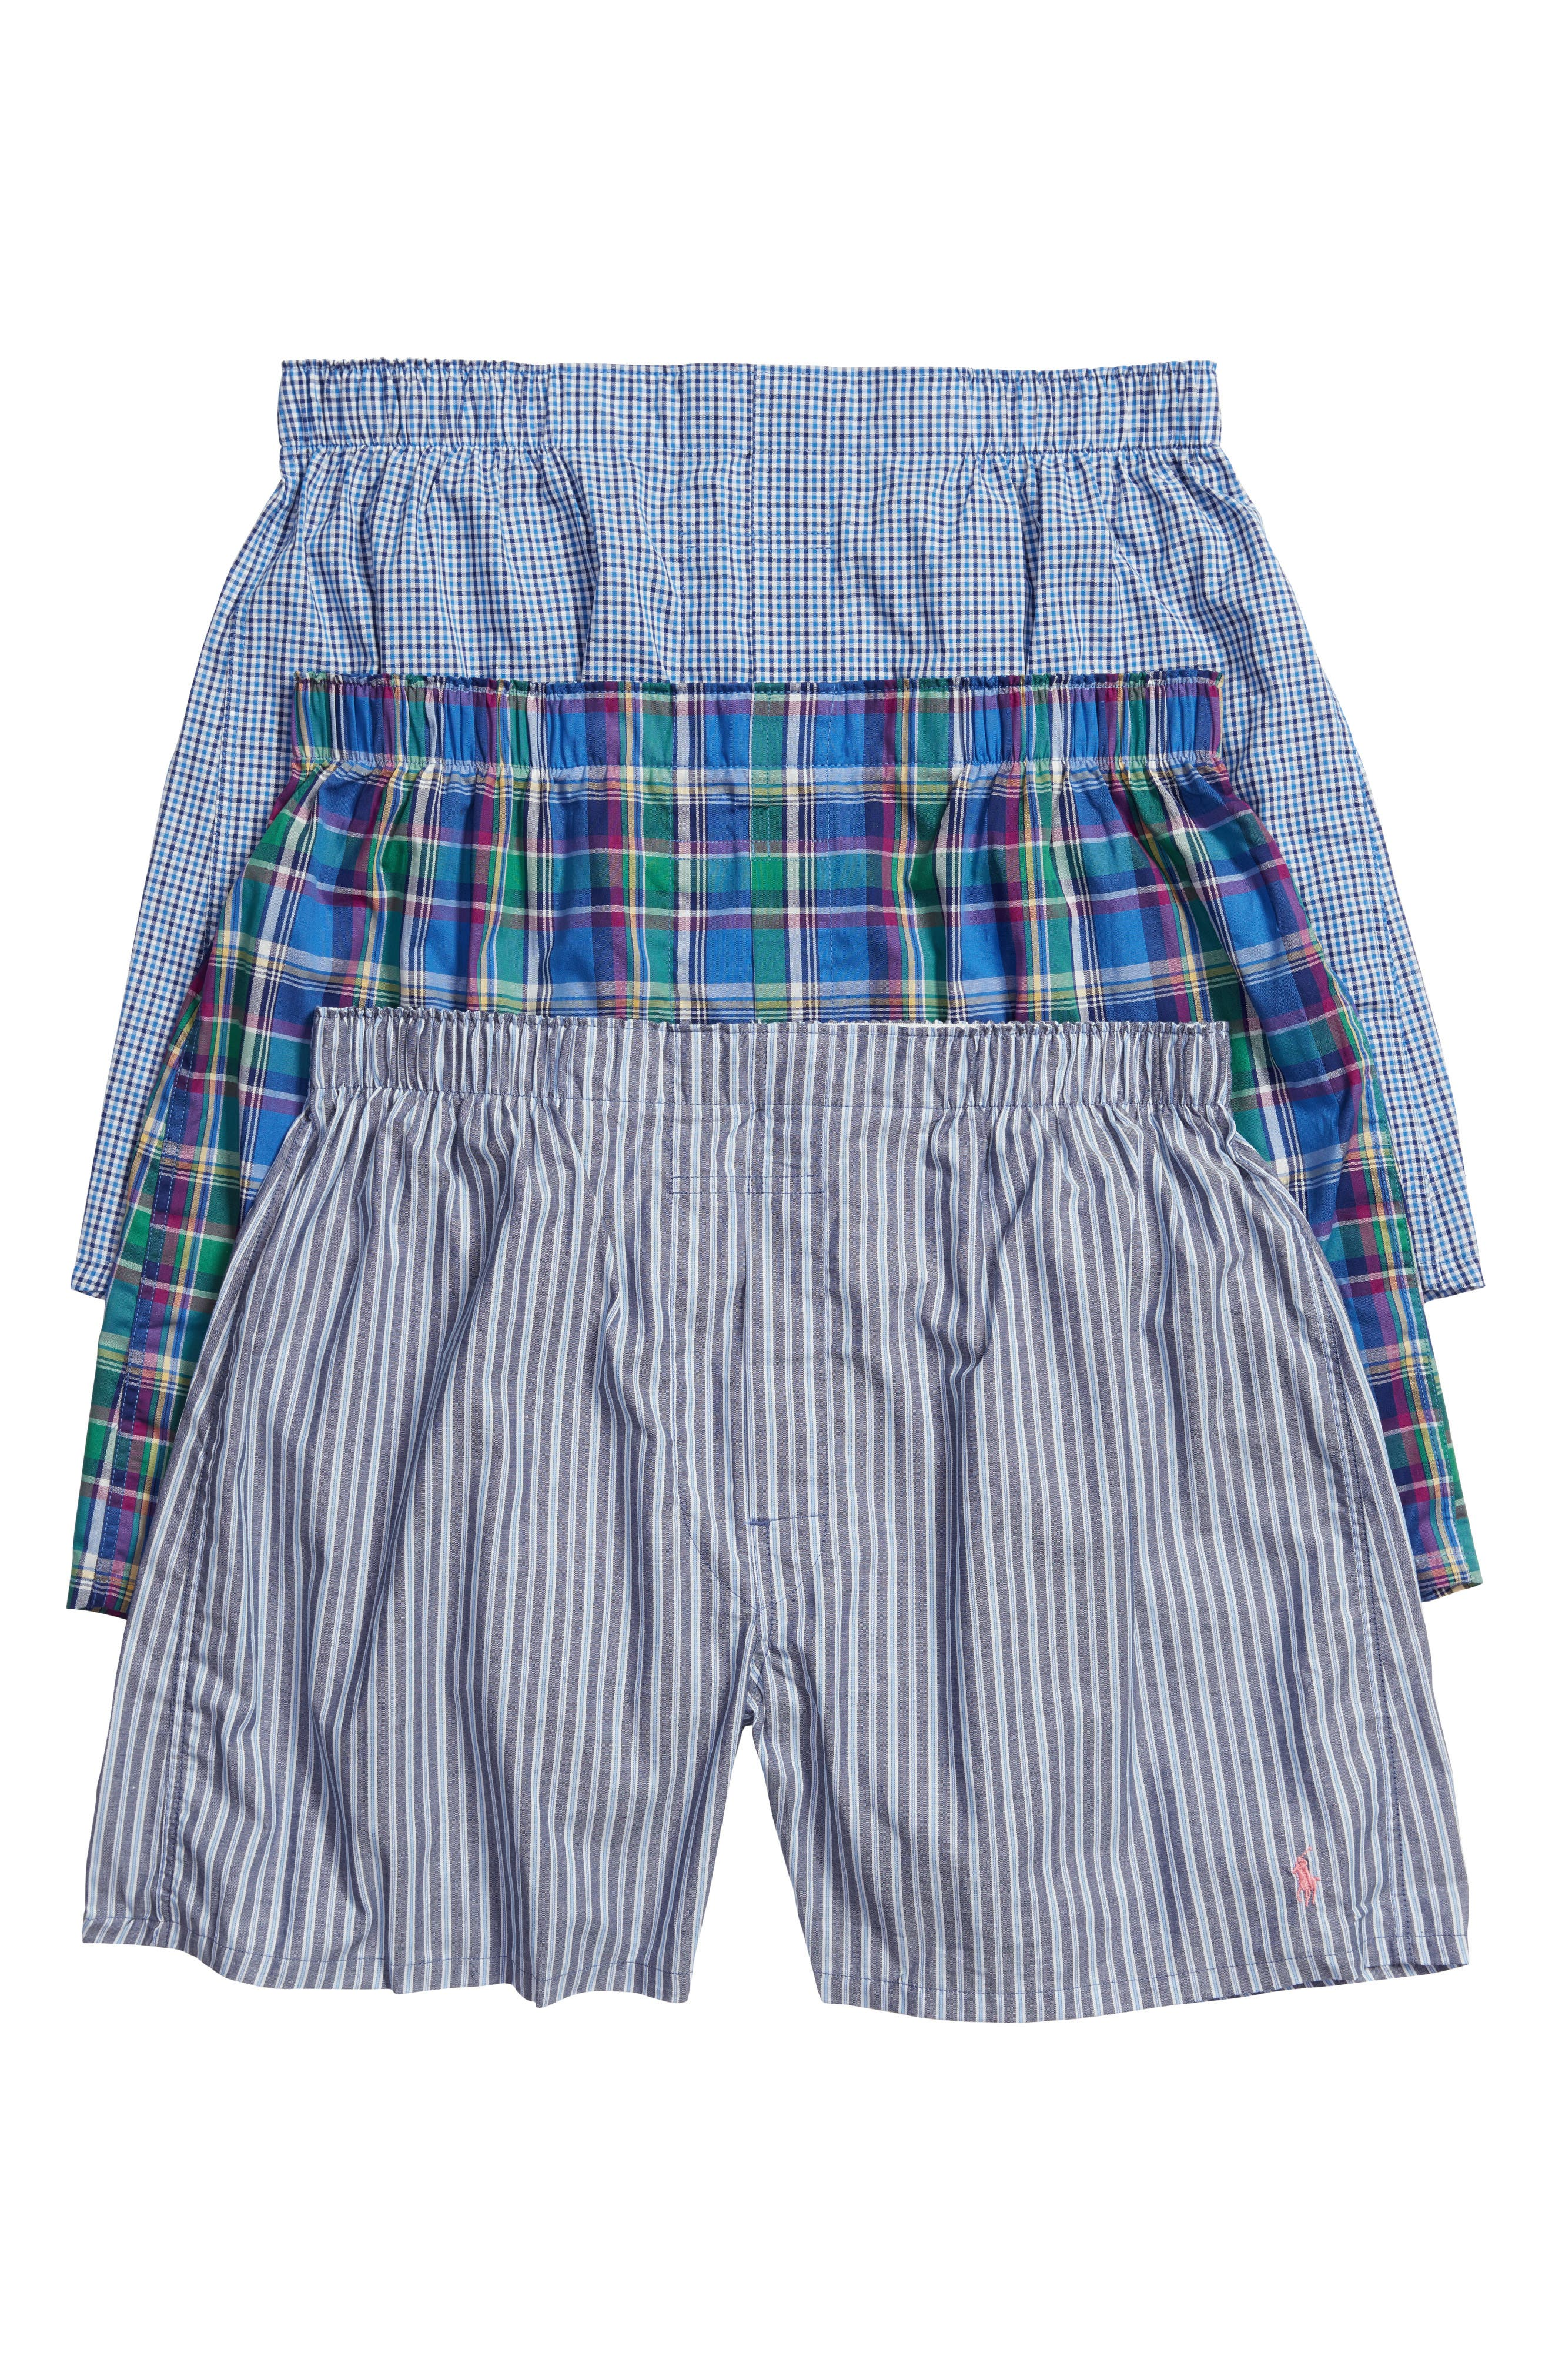 Main Image - Polo Ralph Lauren Assorted 3-Pack Woven Cotton Boxers